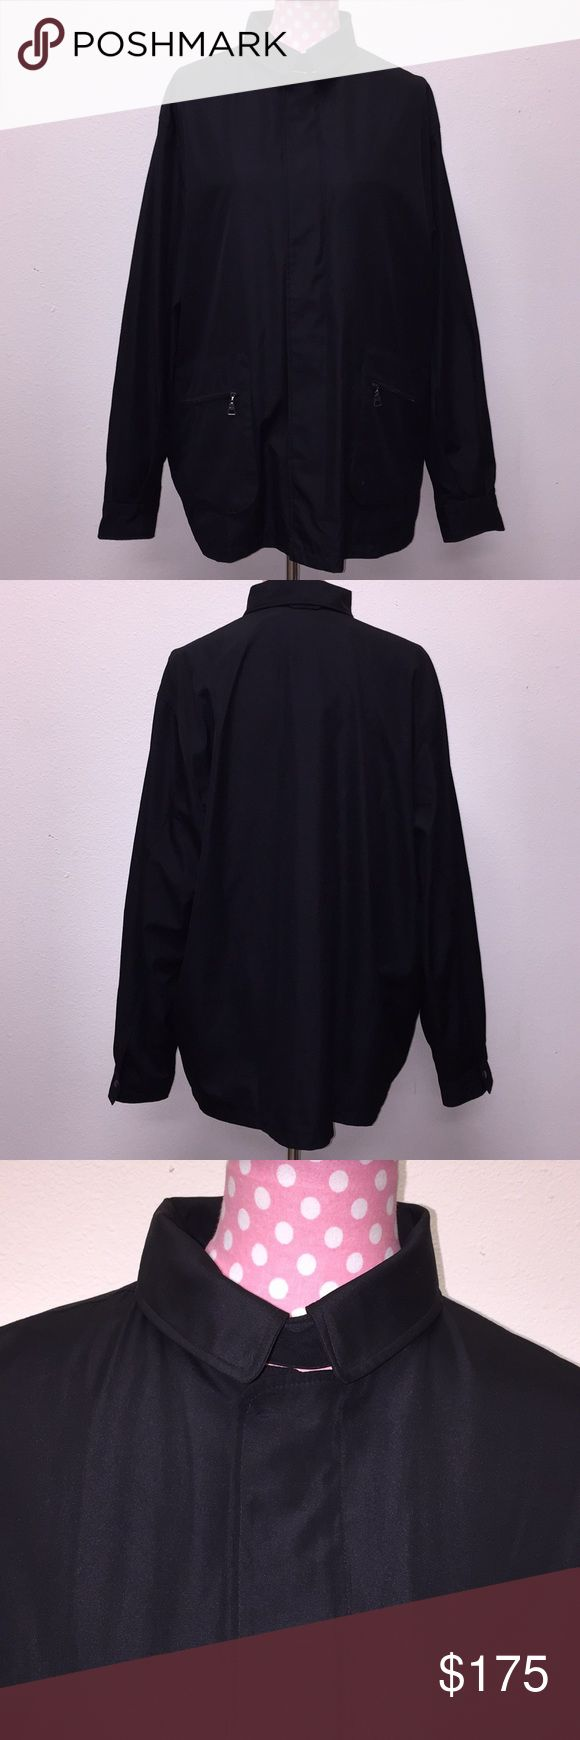 Prada Women's Zip Up Coat Size XXL. In very excellent condition! Shows no signs of wear. All black with silver details. 100% polyester. Two pockets. Feel free to ask any questions! No trades sorry, and offers thru offer button only! Items ship same day M-F if purchased before 3pm PST. 😊xx... Prada Jackets & Coats